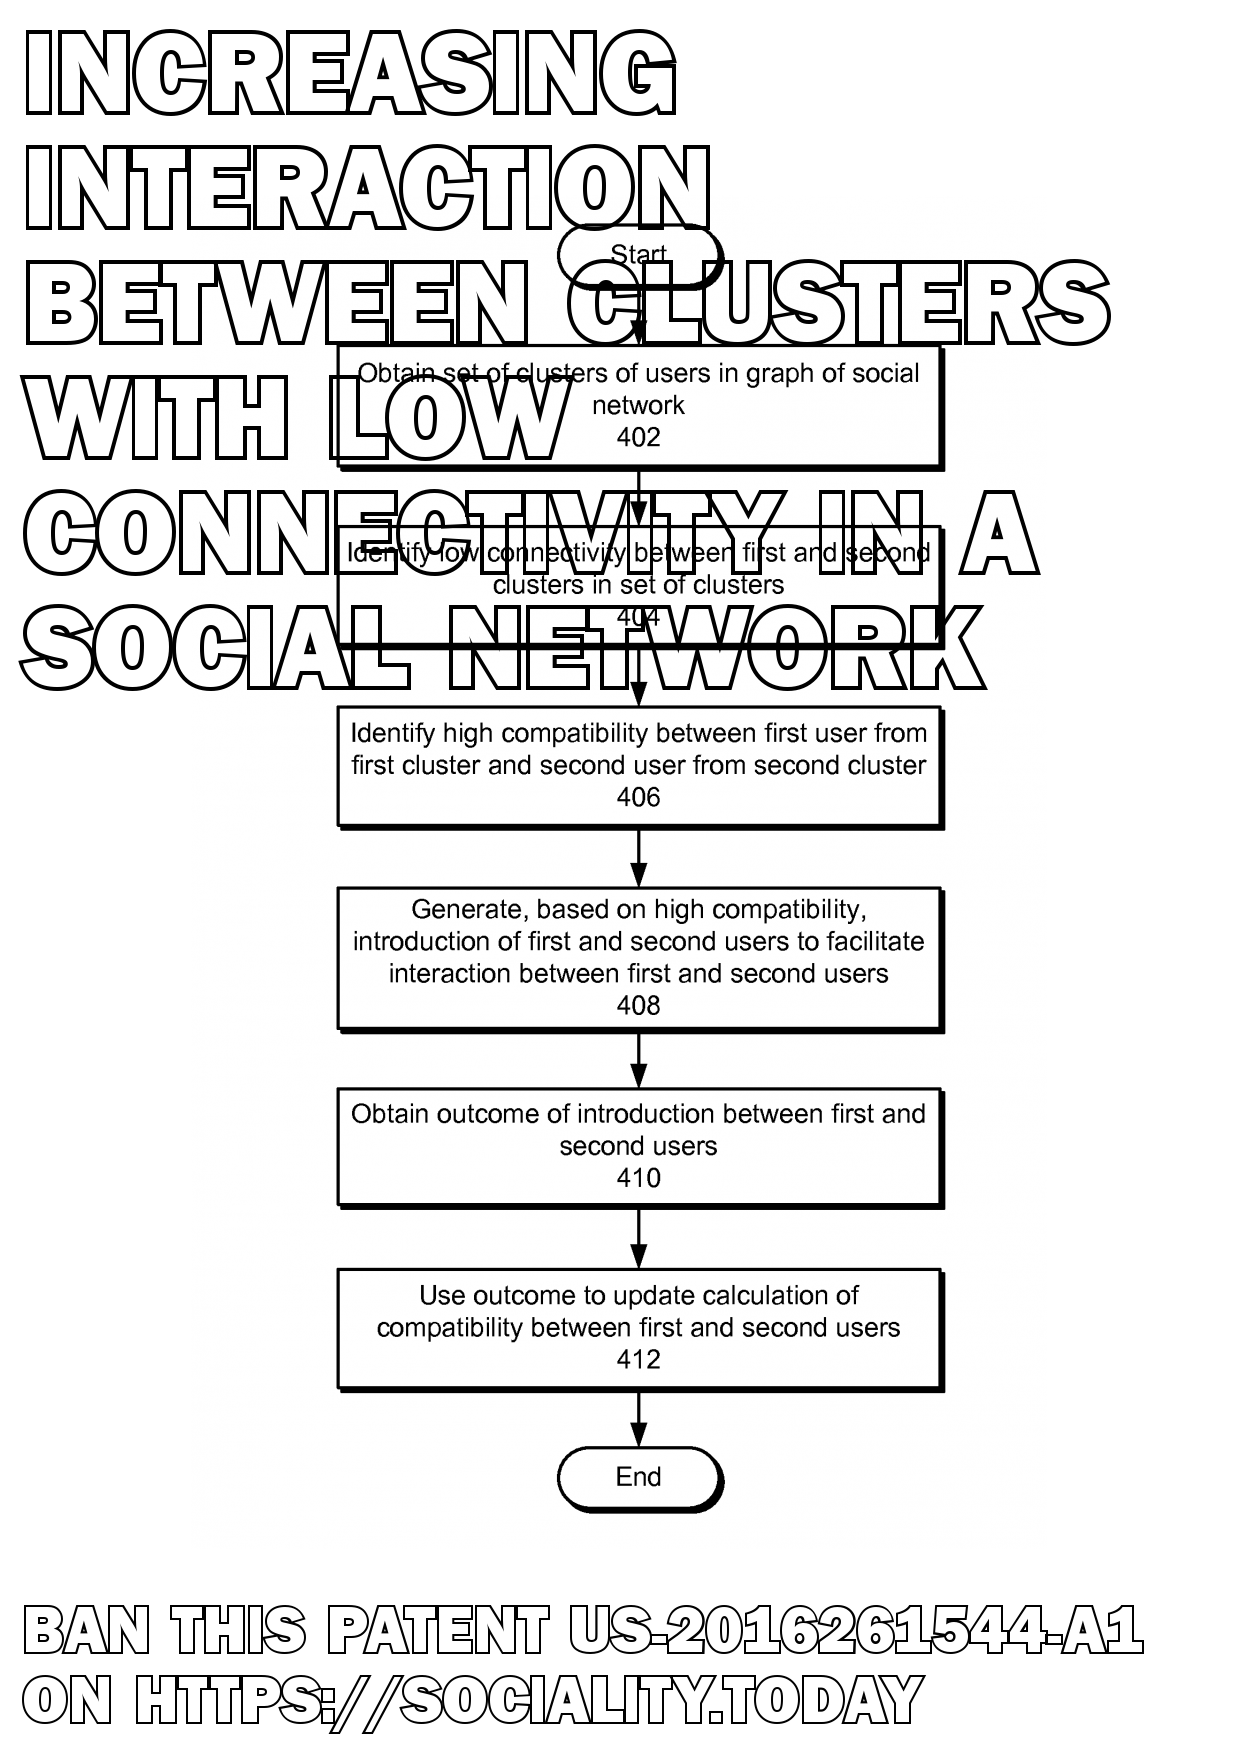 Increasing interaction between clusters with low connectivity in a social network  - US-2016261544-A1